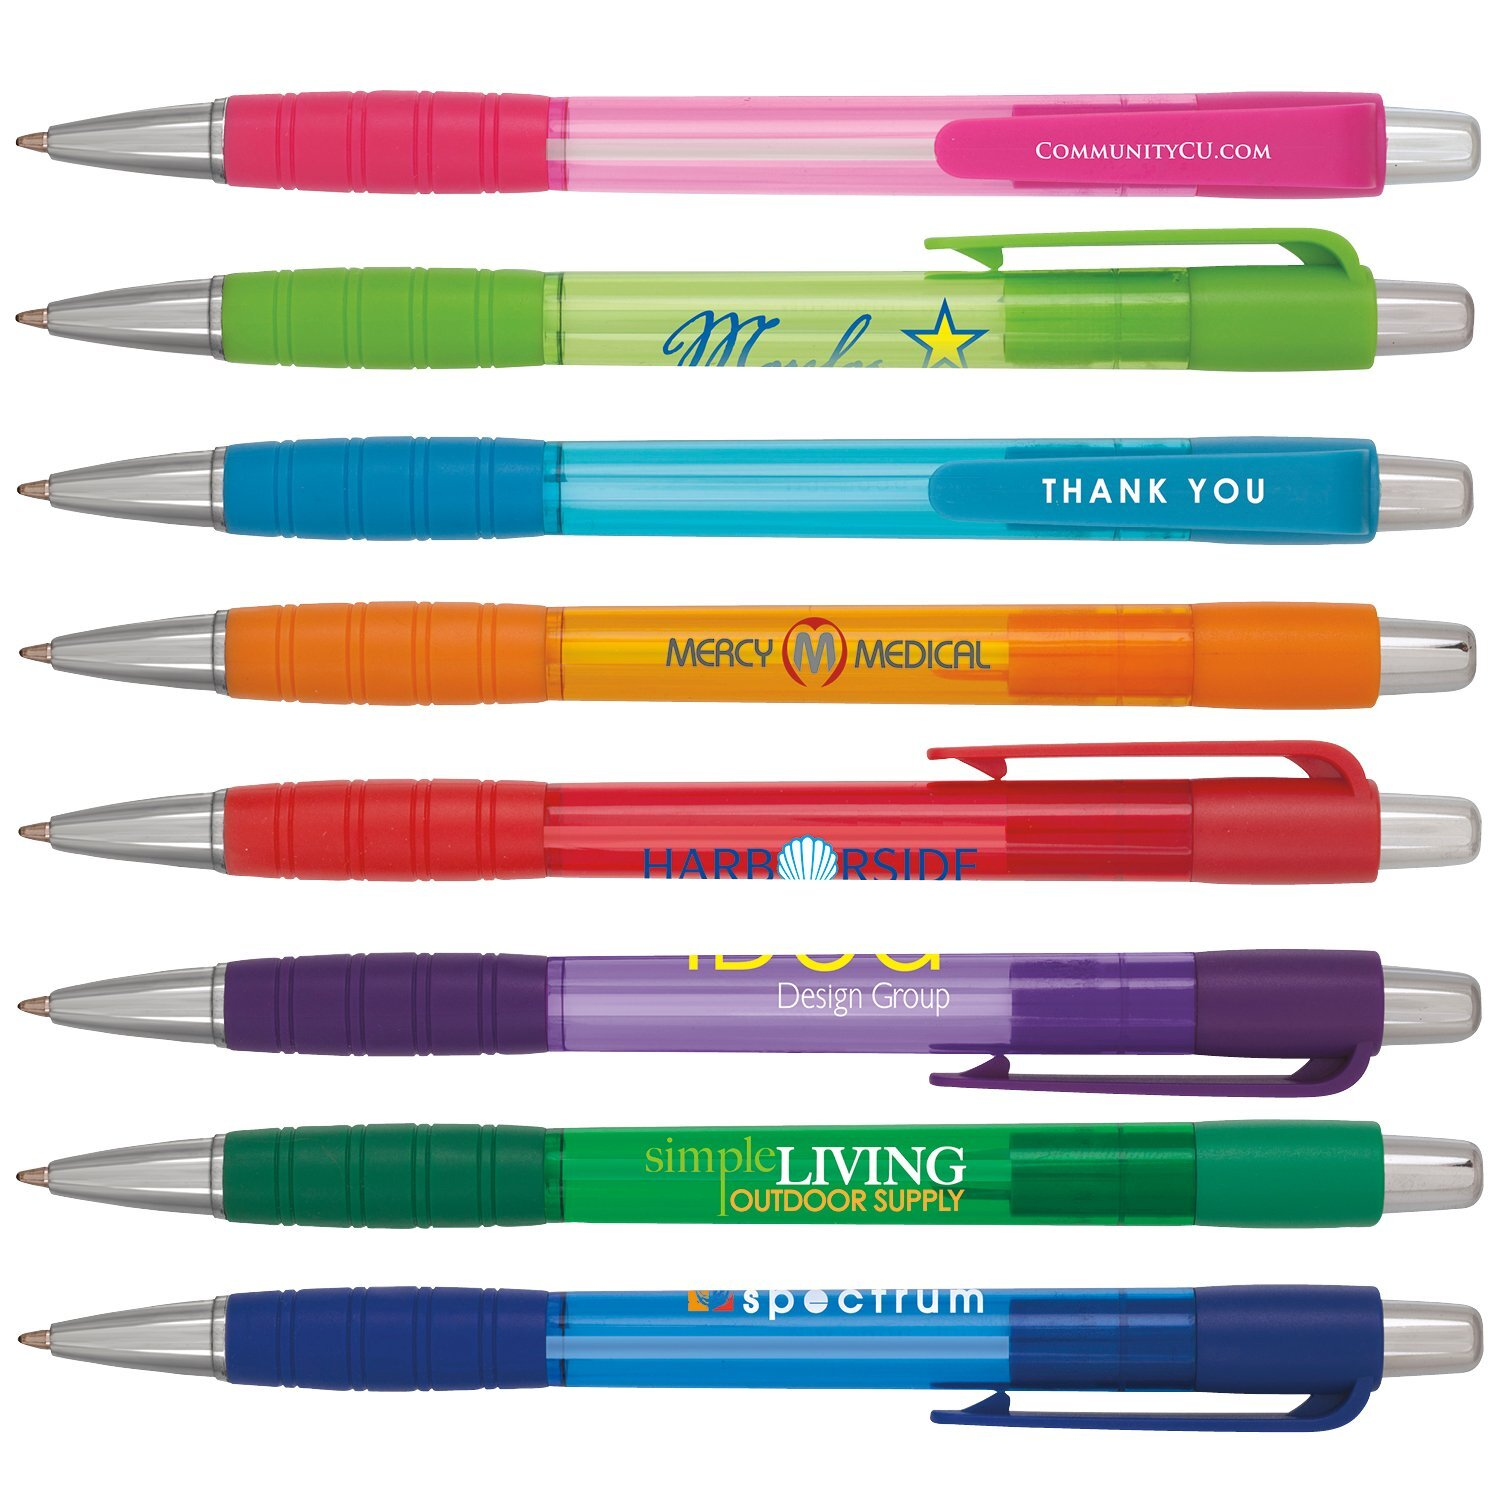 Element Translucent Retractable Ballpoint Pen